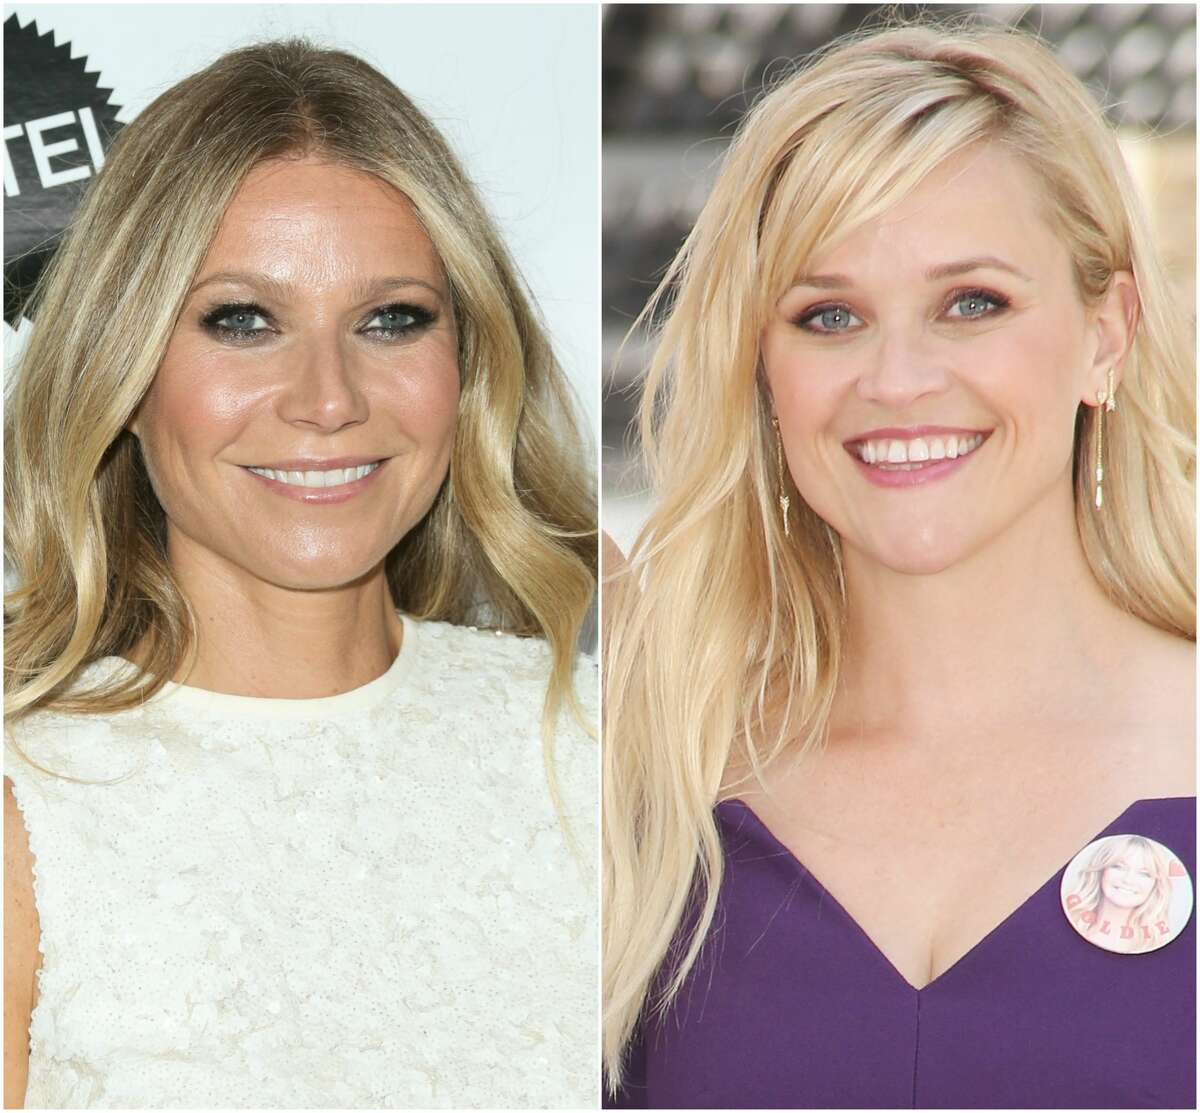 Nordstrom will be carrying Reese Withersoon's southern style-inspired clothing brand, Draper James and Gwyneth Paltrow's lifestyle and wellness blog-turned health and beauty mega money brand, Goop.